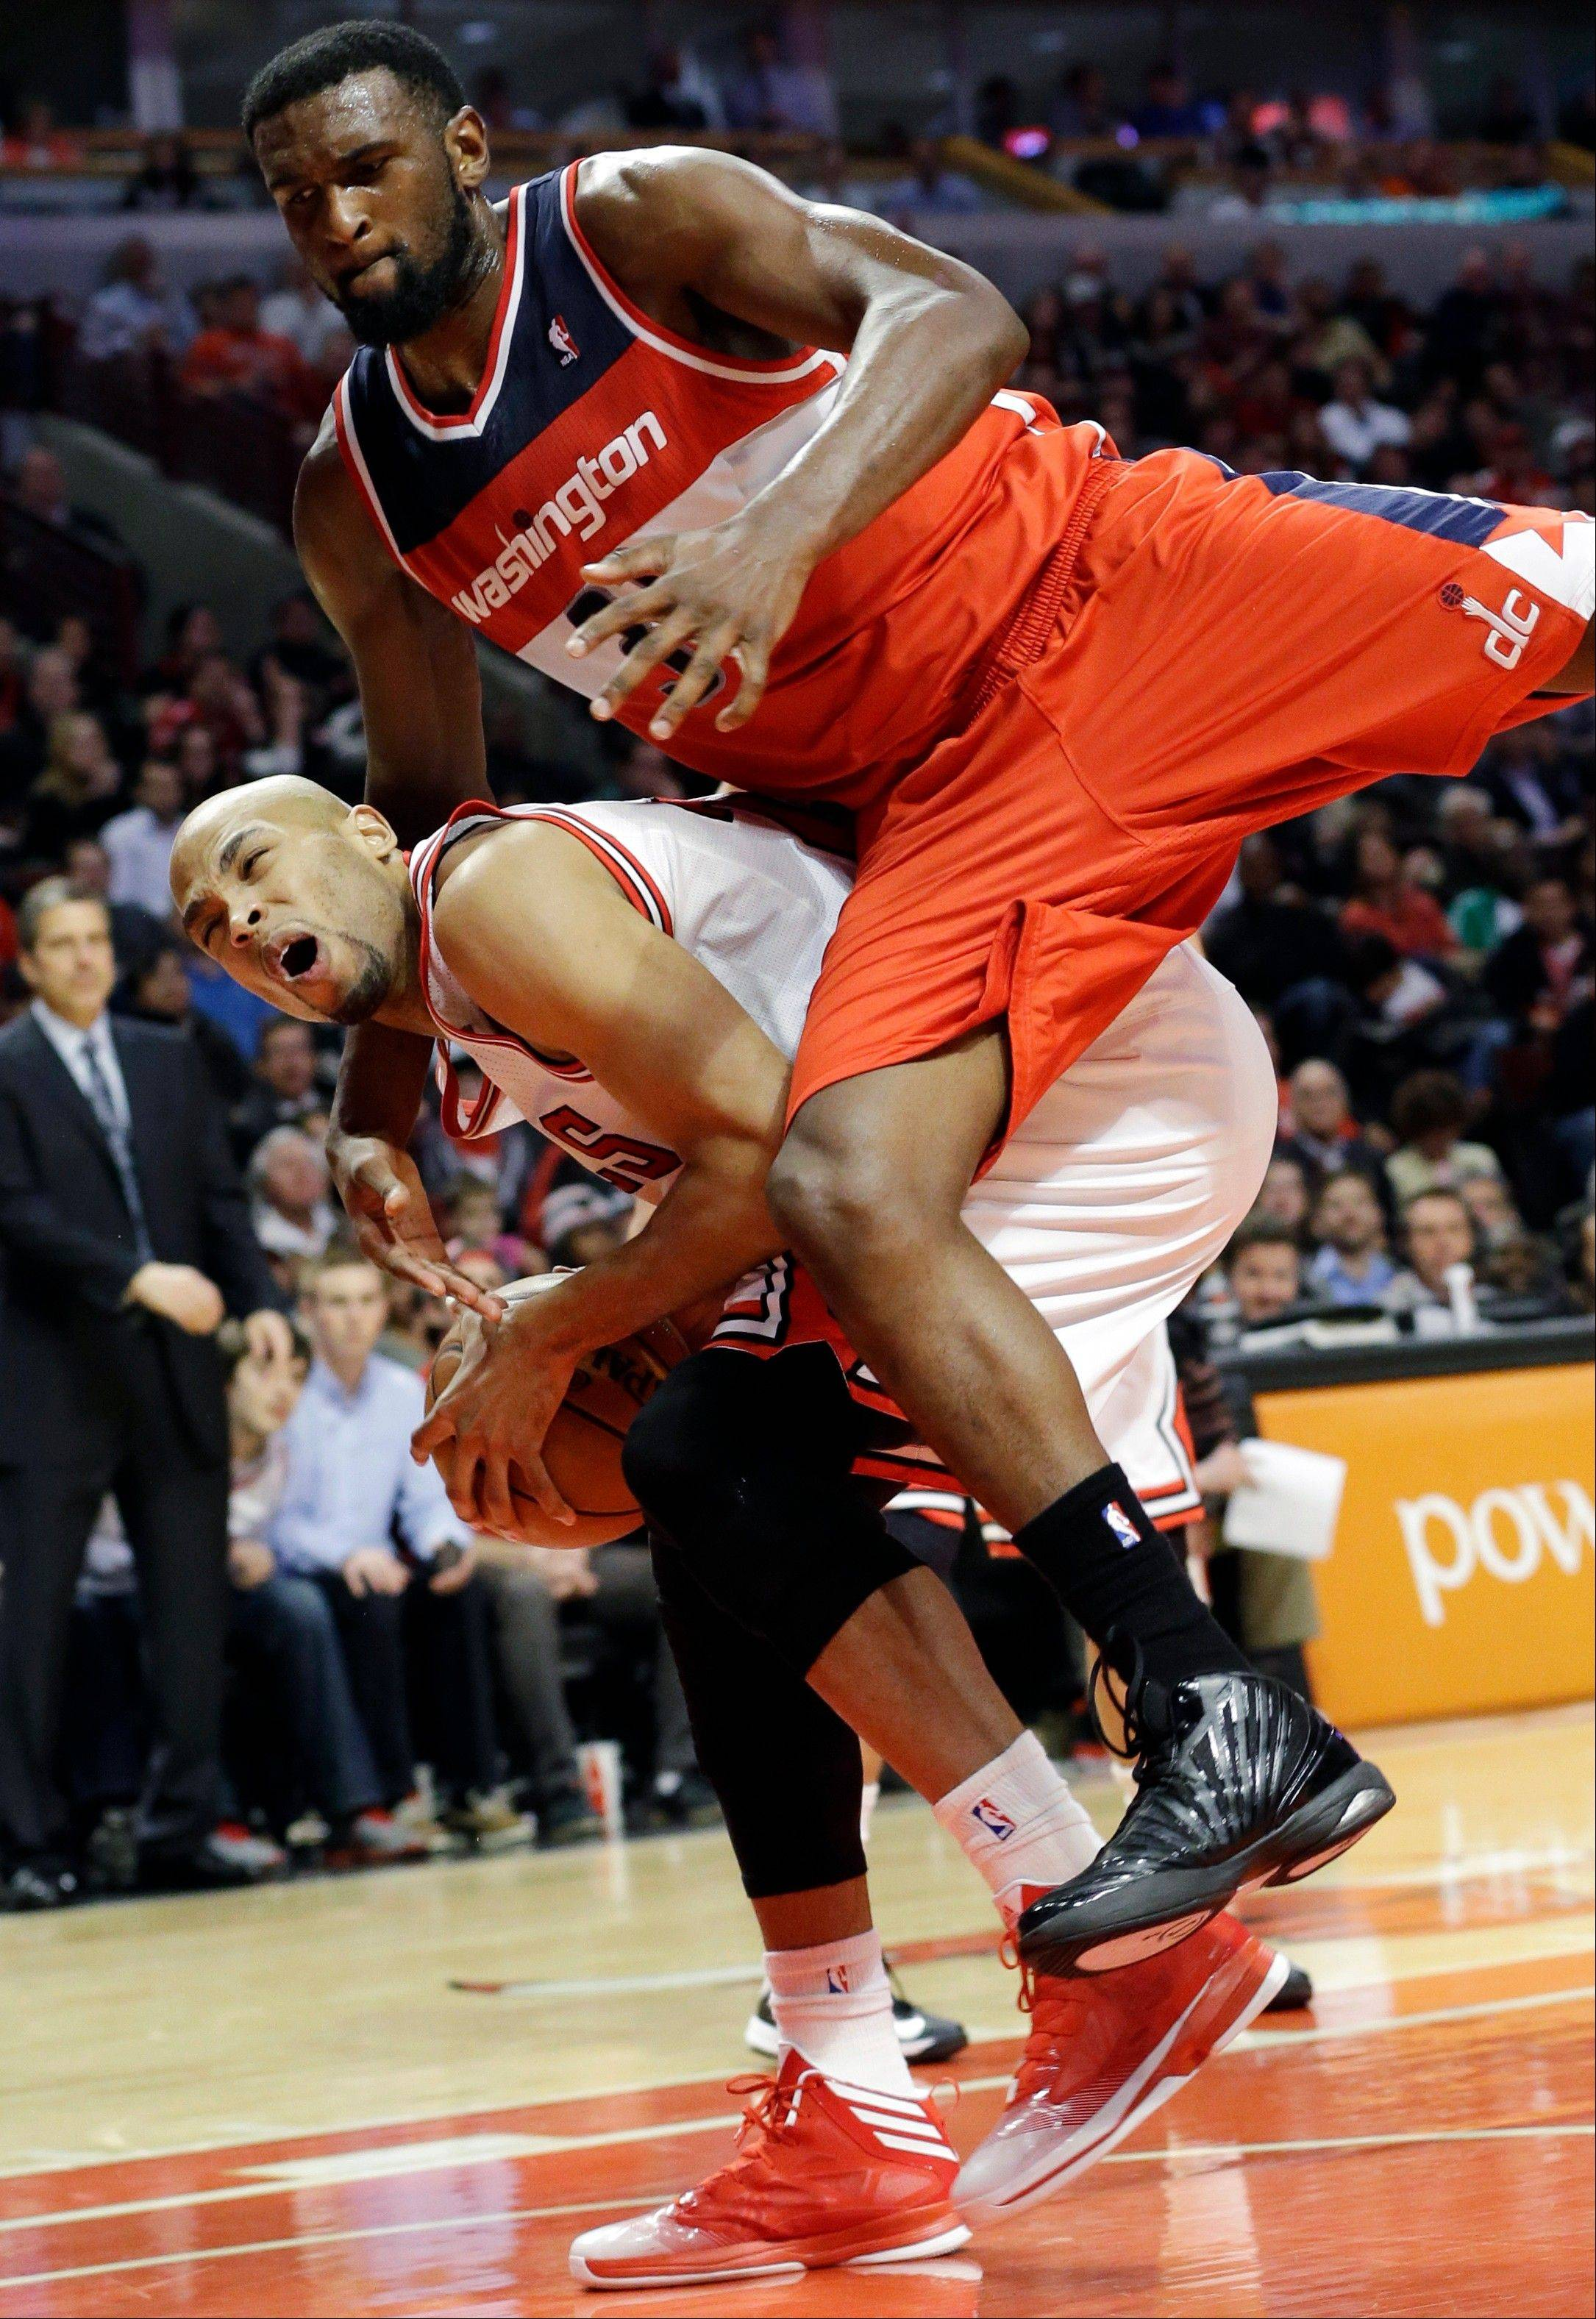 Washington Wizards forward Chris Sigleton, top, fouls Chicago Bulls forward Taj Gibson during the second half of an NBA basketball game in Chicago, Wednesday, April 17, 2013. The Bulls won 95-92.